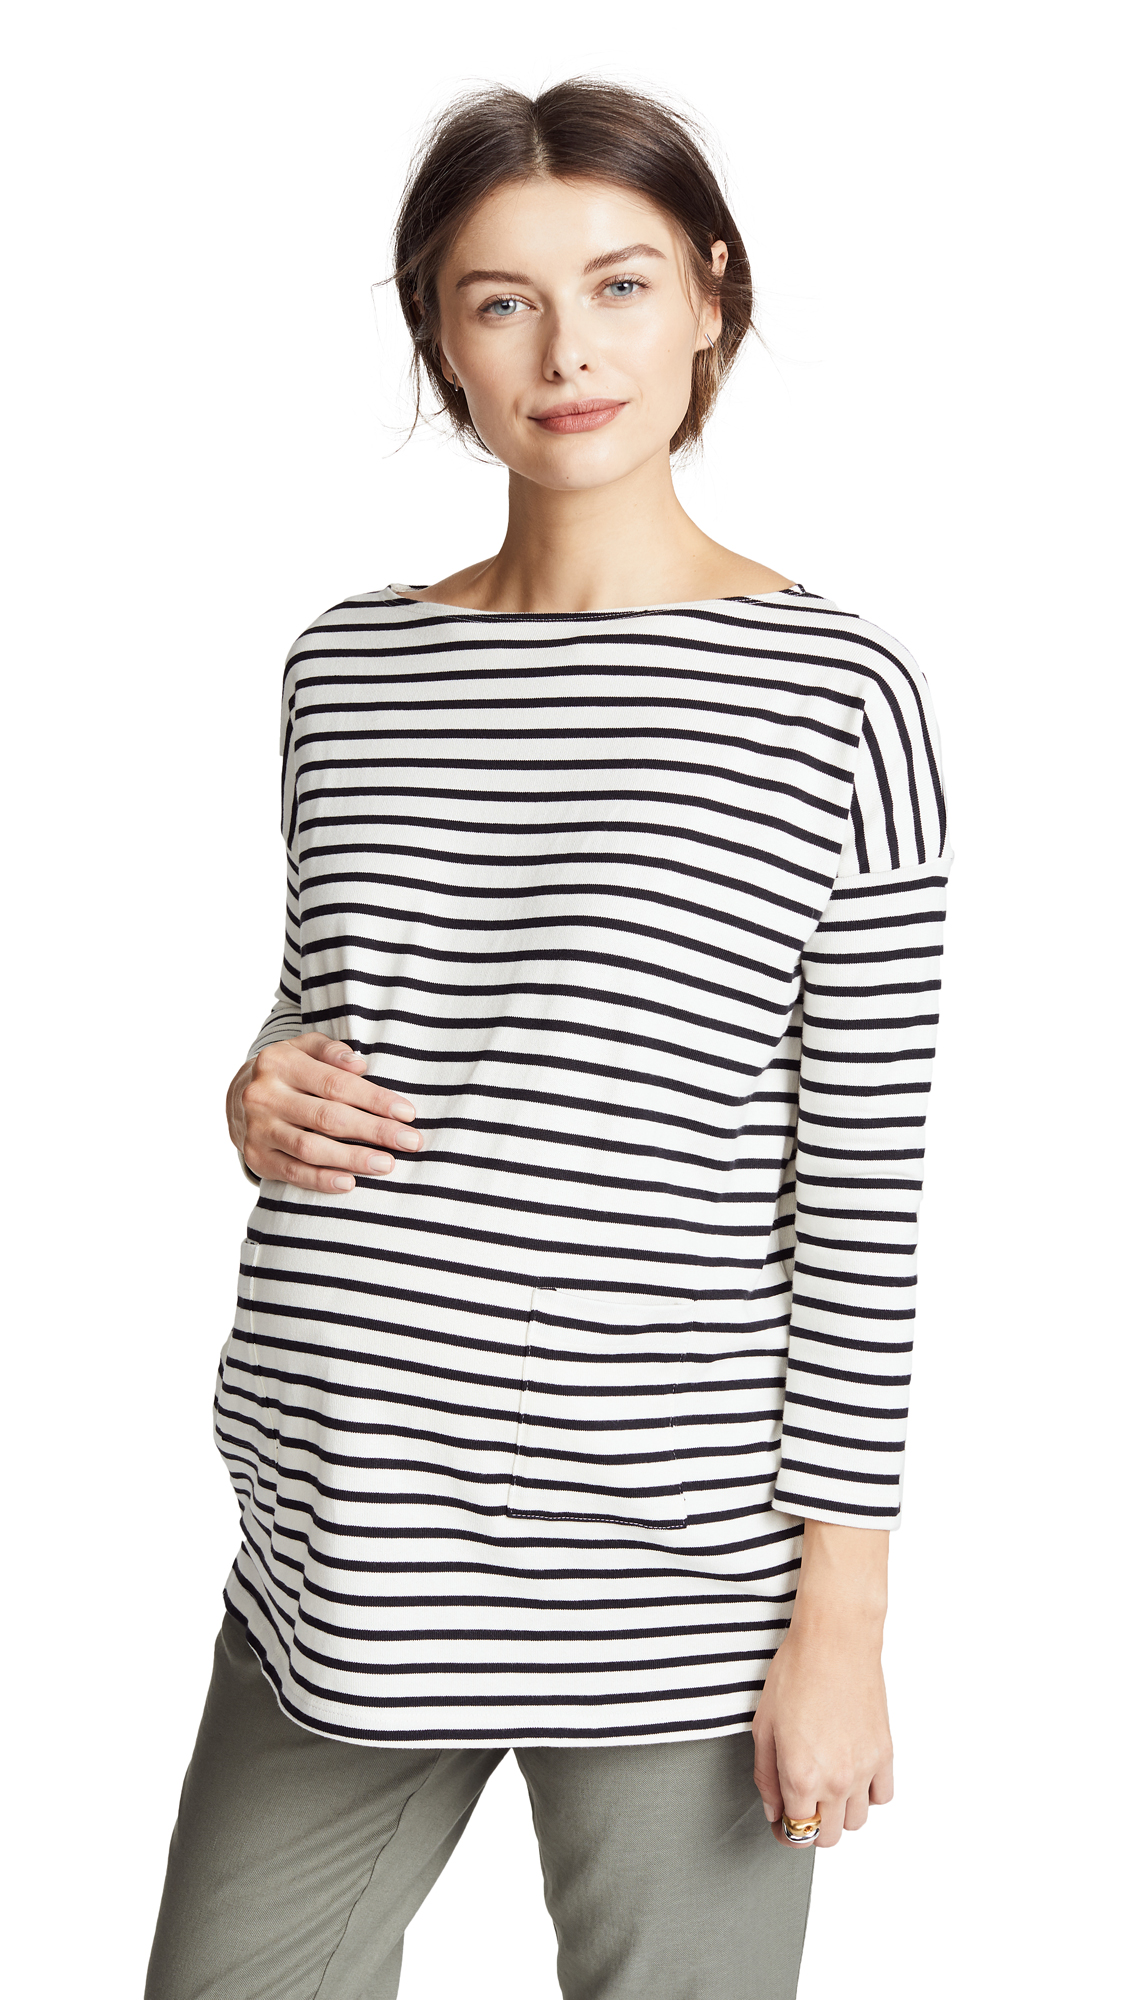 HATCH The Bateau Top In Black & White Stripe